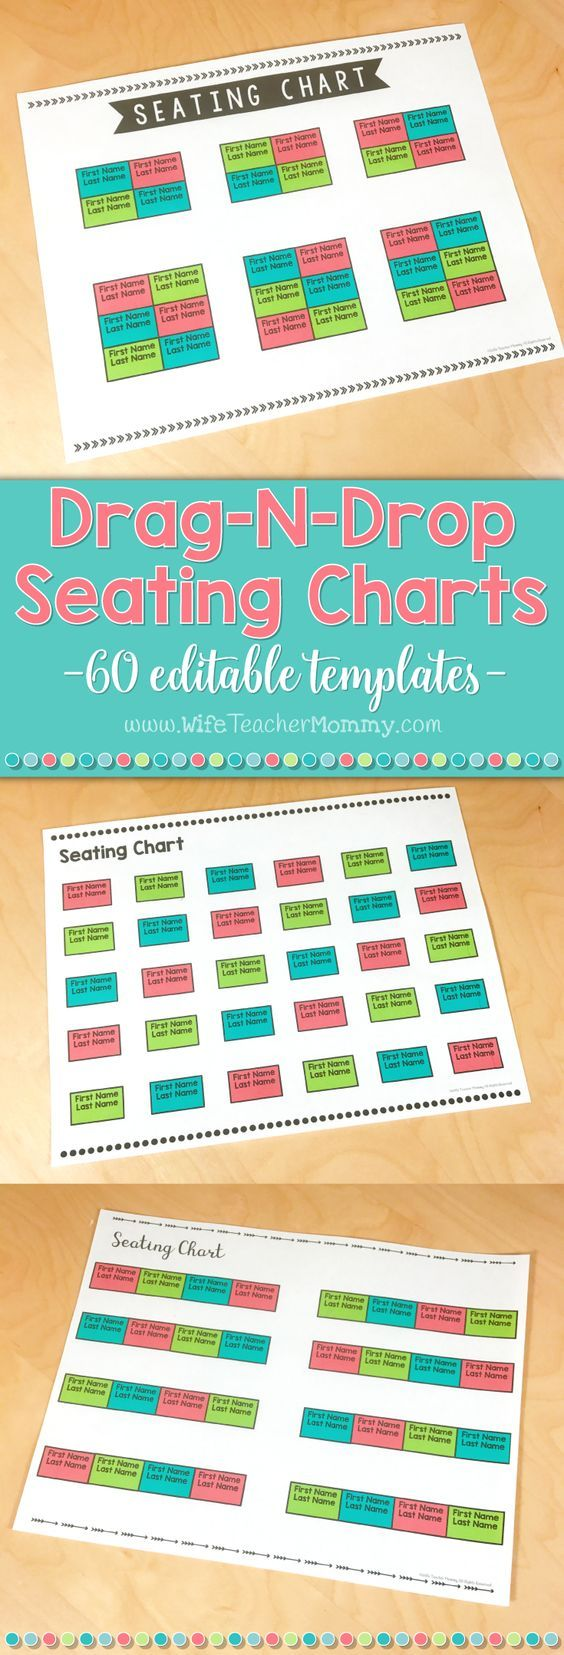 These editable seating chart PowerPoint templates allow you to create adorable seating charts on your computer. Most of the heavy lifting is done for you and all that is left to do is customize! Also perfect for substitutes, student teachers, volunteers, etc! There are 10 adorable, ink-friendly designs, and a horizontal and vertical version of each. Then, in each file there are 3 different layouts to choose from: individual desks, tables, or rows. (However, you can drag and drop...